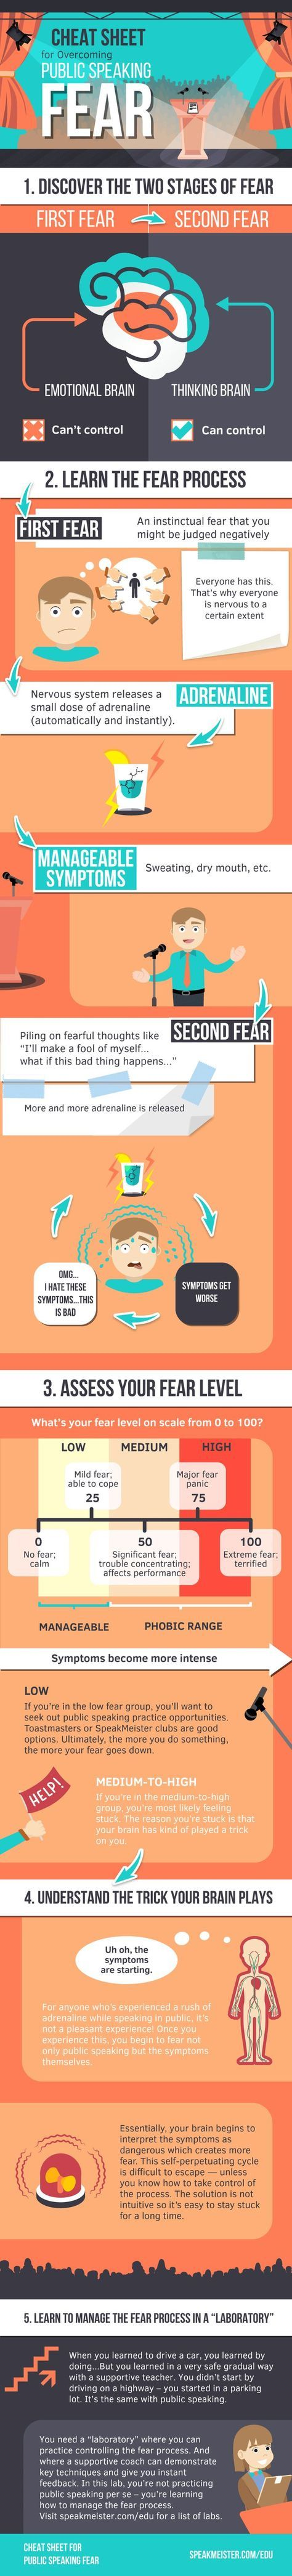 How to Overcome Public Speaking Fear 1065